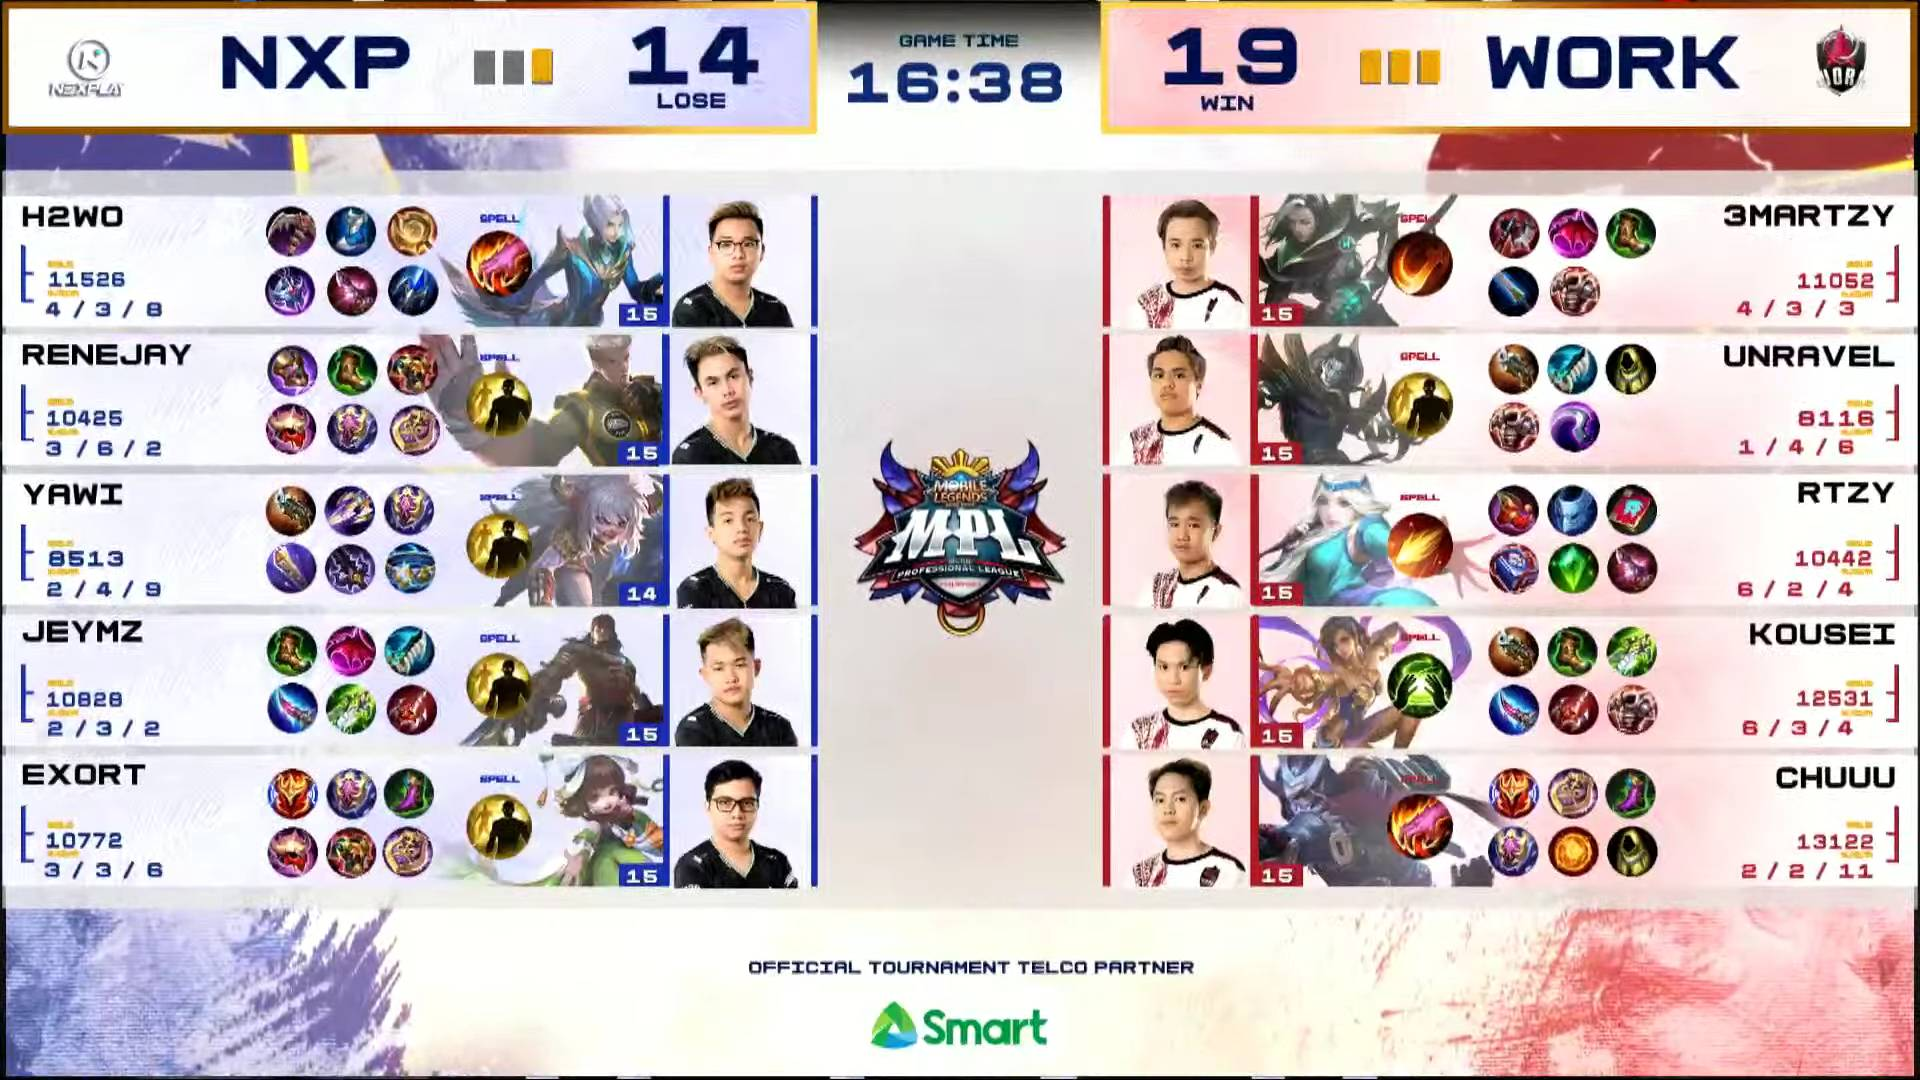 MPL-PH-7-Work-Auster-def-NXP-Game-4 Kousei's Esmeralda takes charge in clincher as Work Auster boots out Nexplay in MPL ESports Mobile Legends MPL-PH News  - philippine sports news